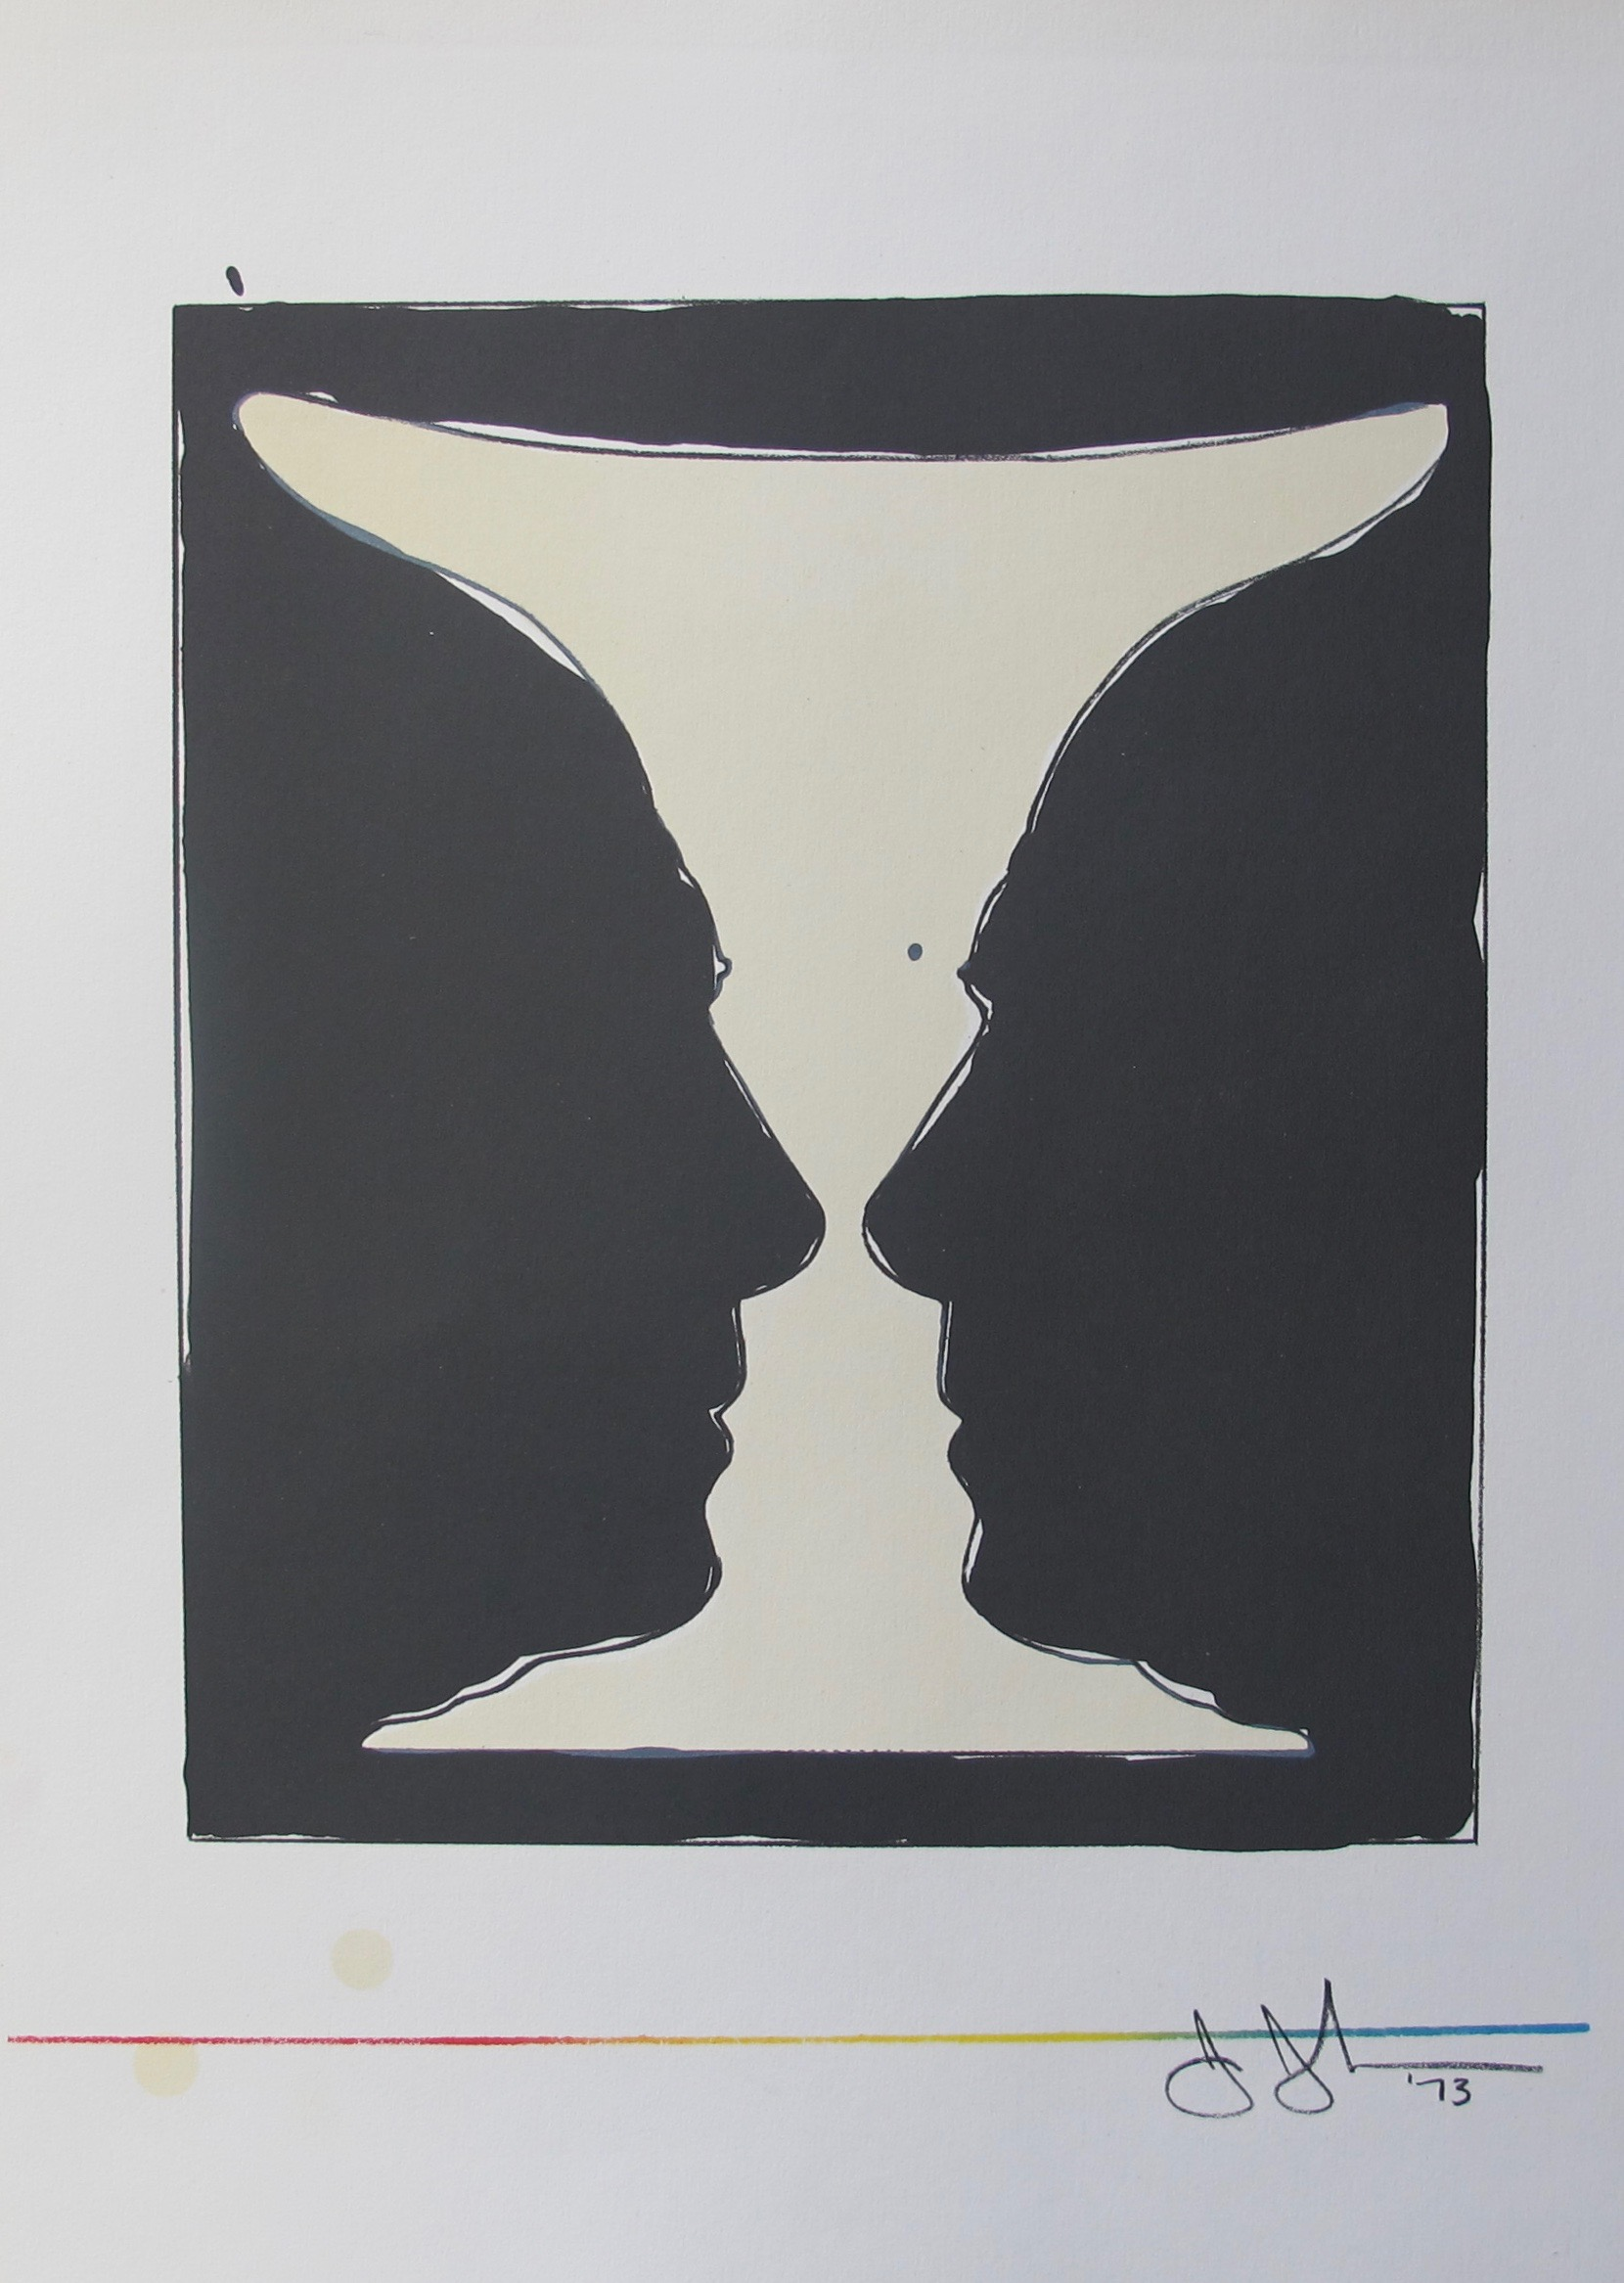 Jasper Johns CUP 2 PICASSO 1973 Plate Signed Lithograph Art by XXe Siecle Paris